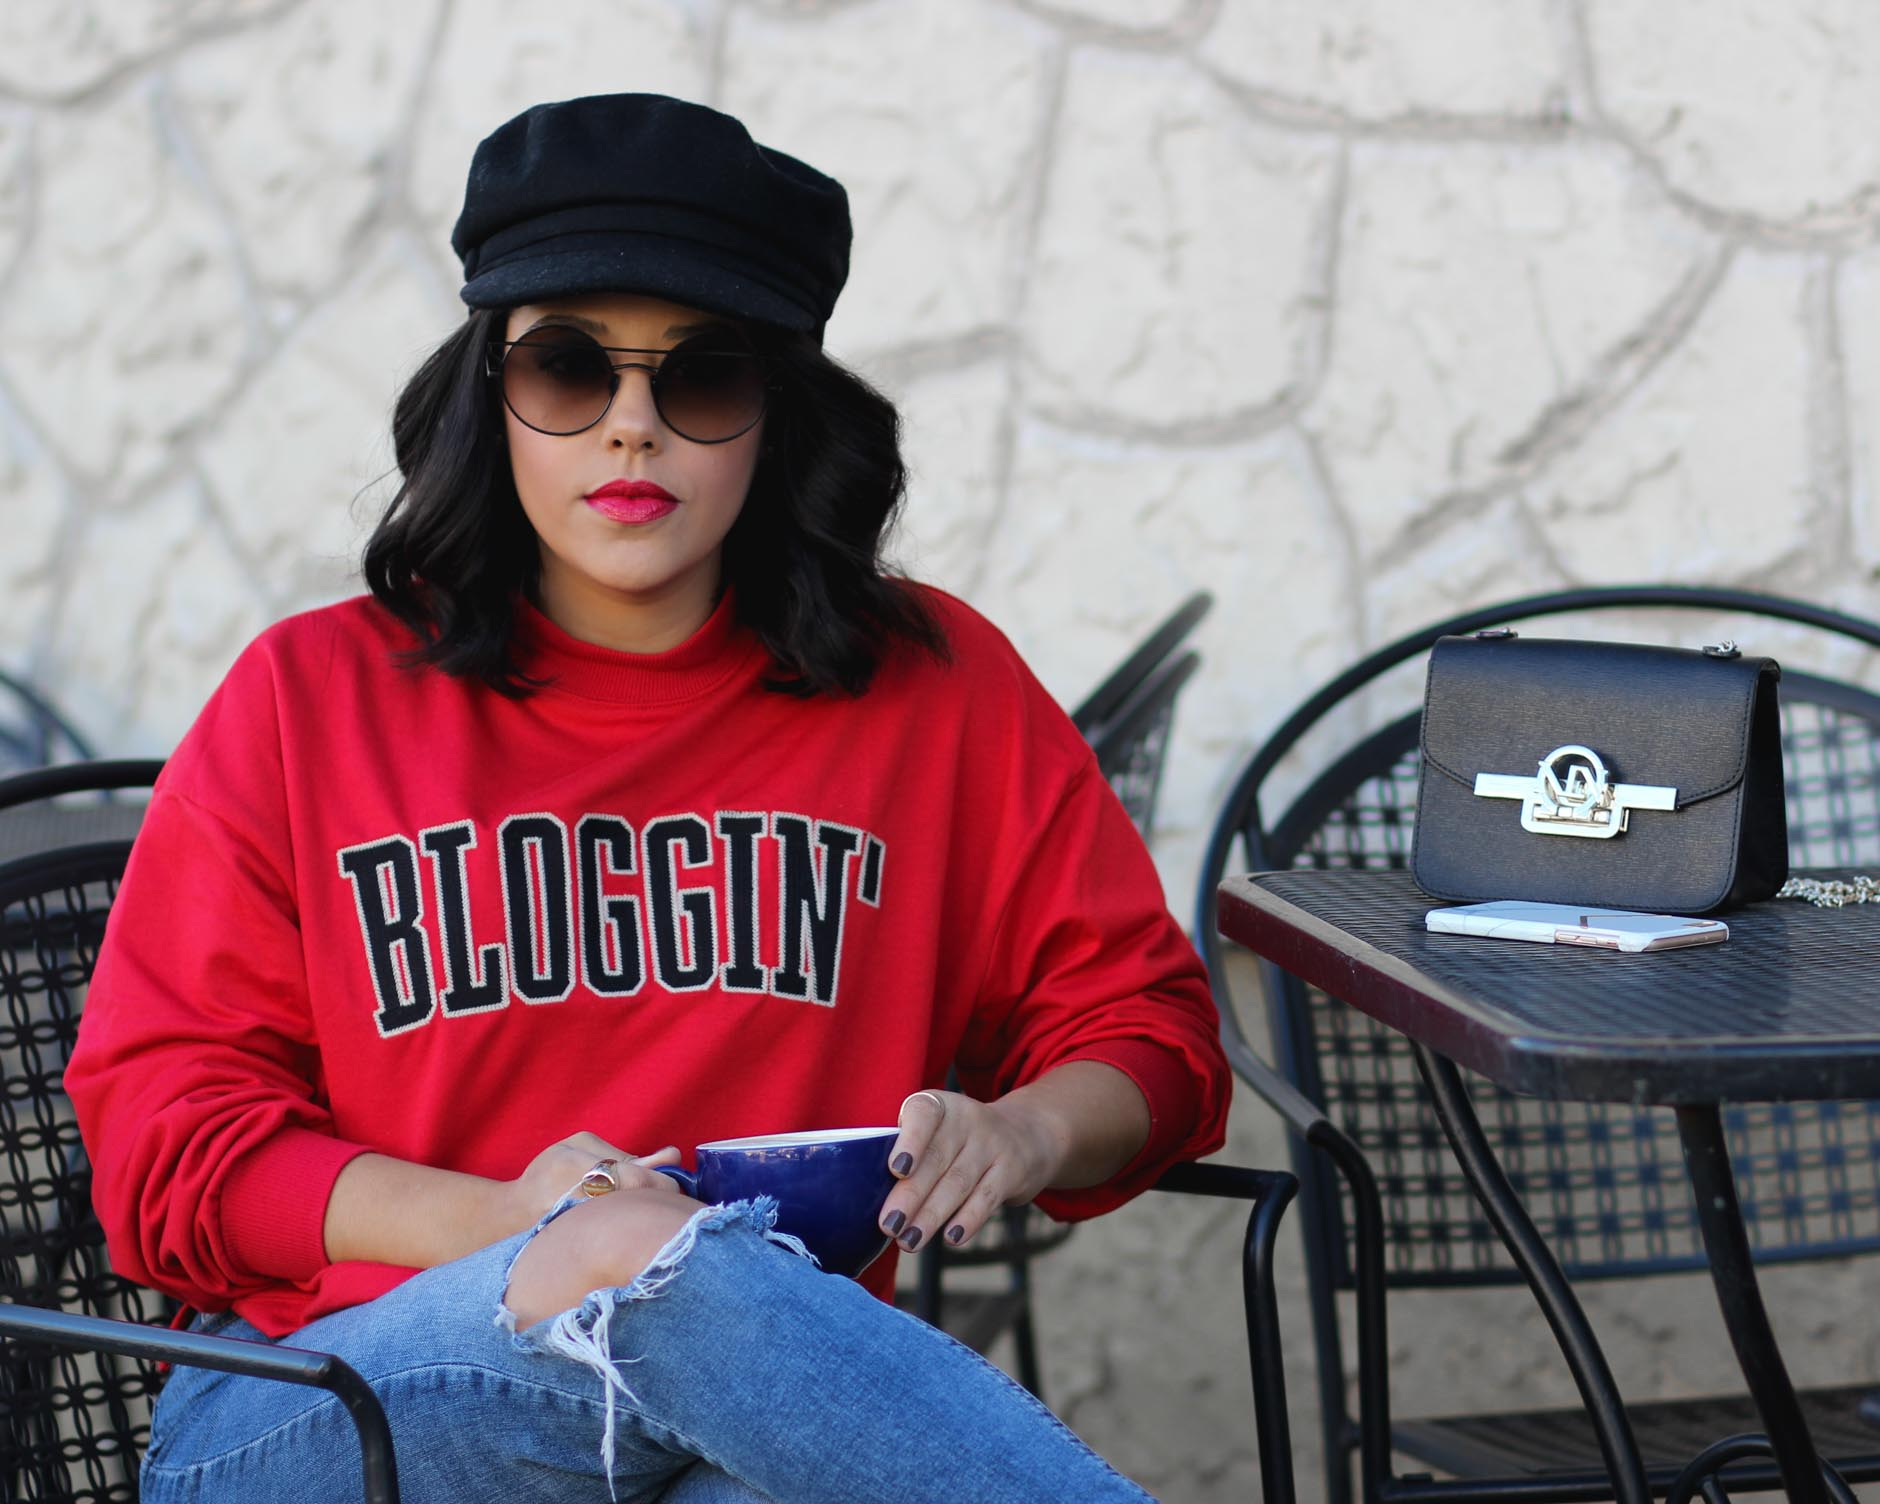 lifestyle blogger naty michele wearing a blogging sweatshirt and holding coffee